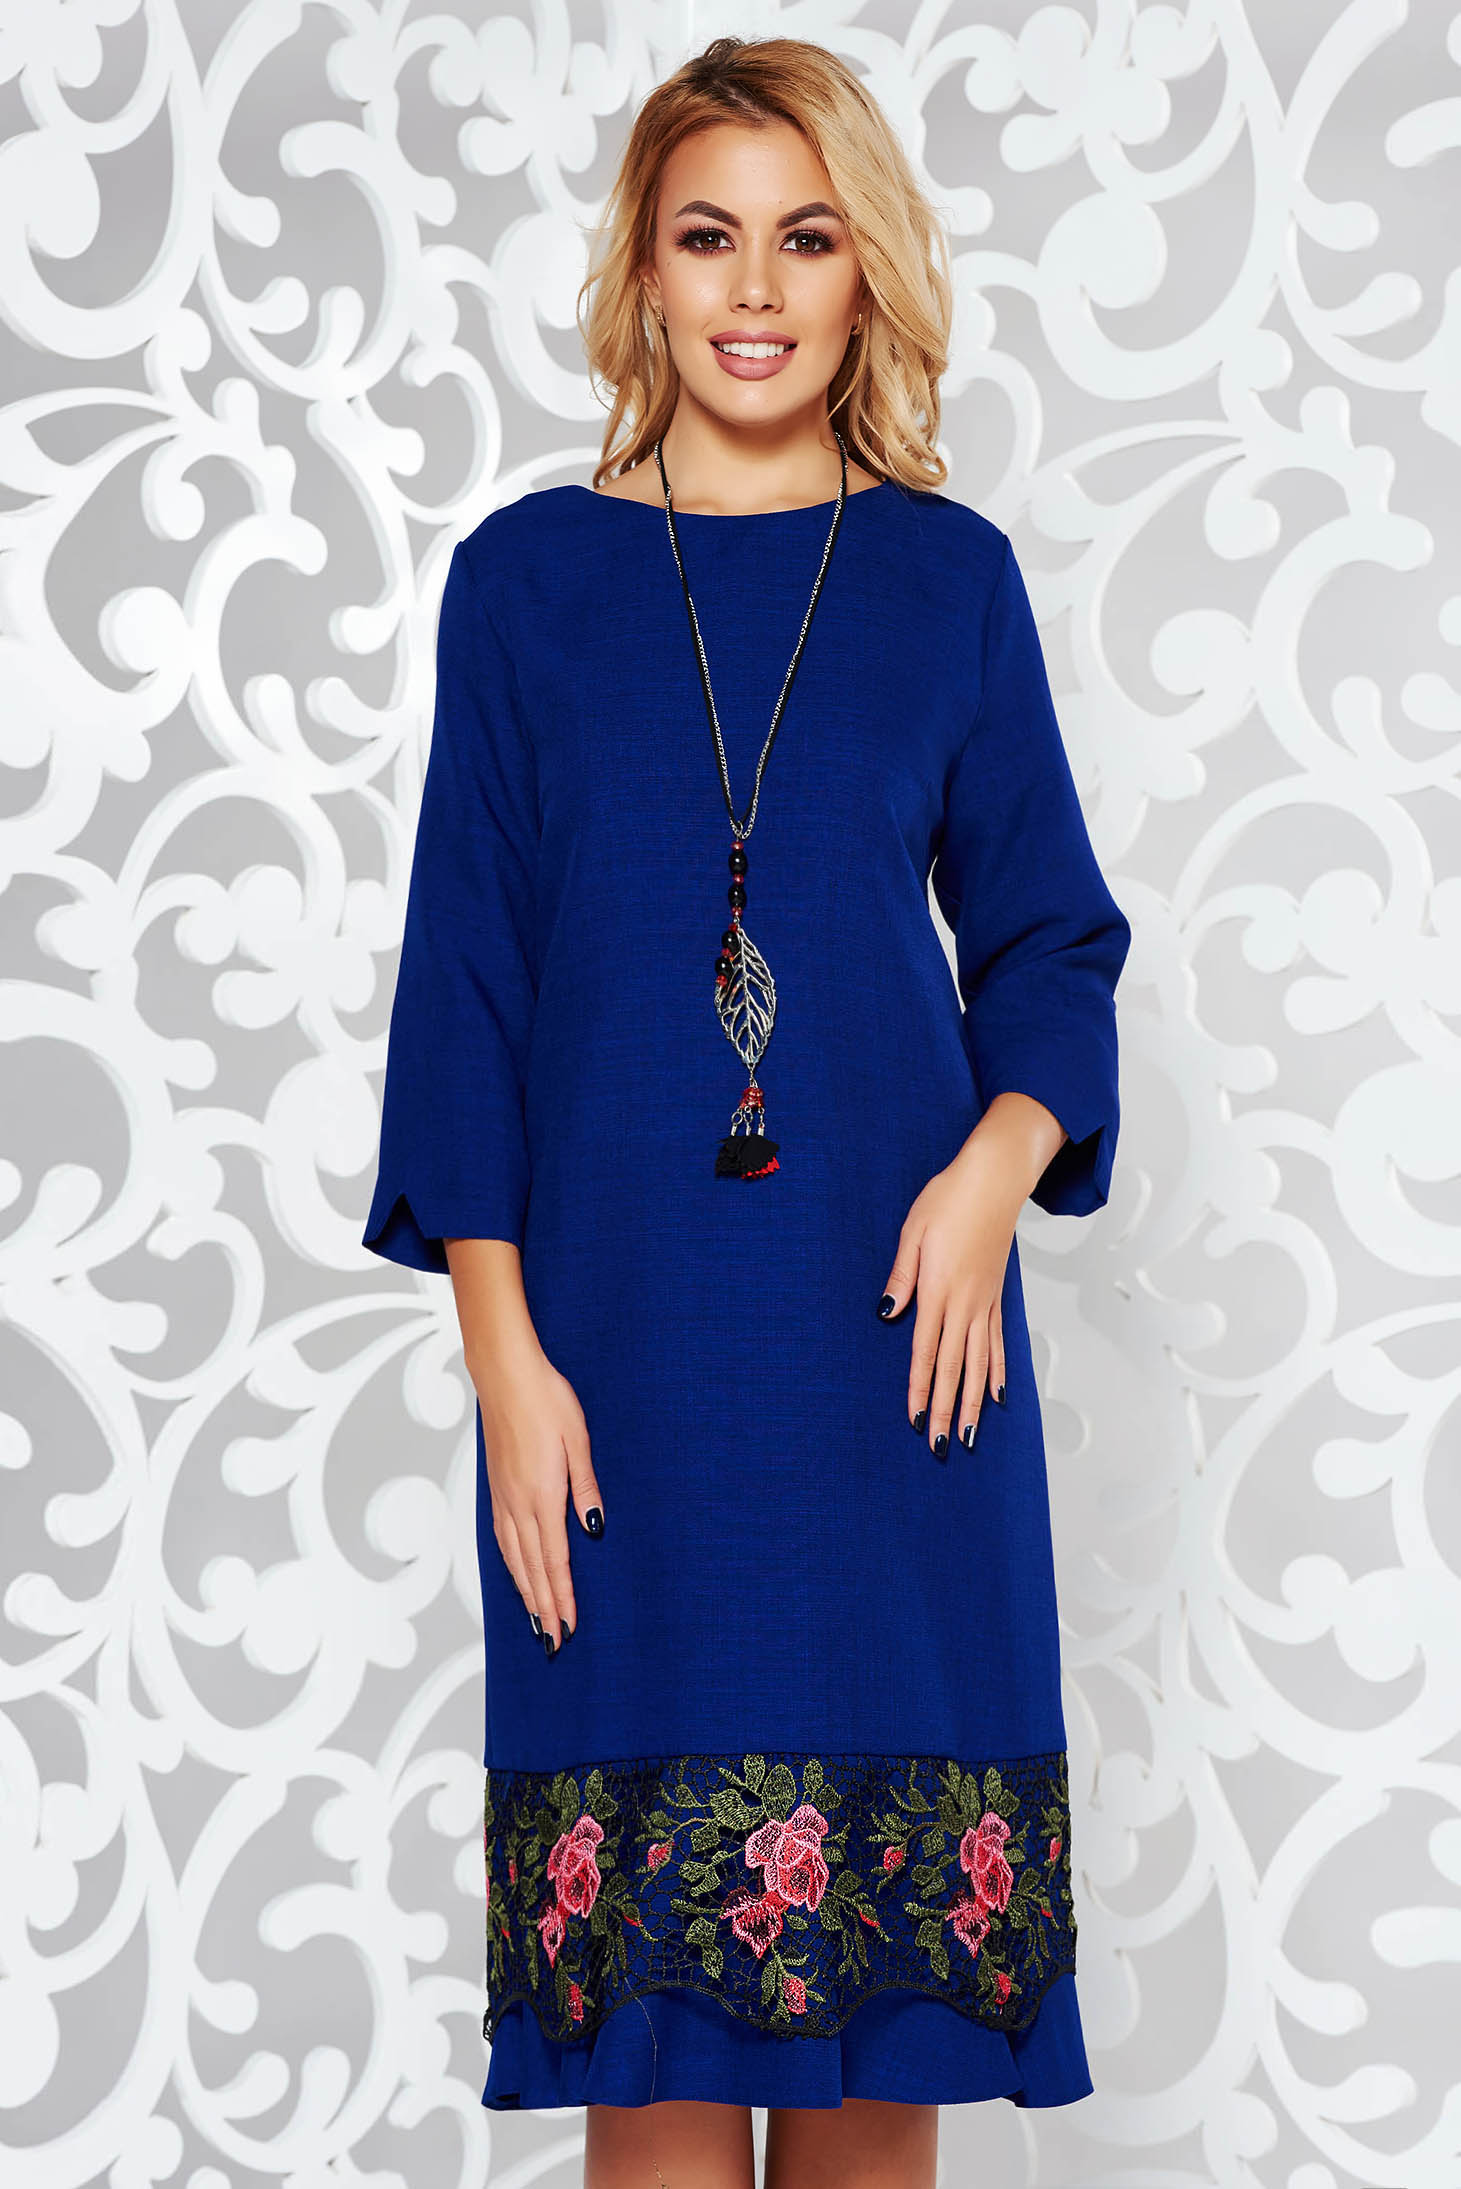 Blue dress elegant flared slightly elastic fabric with lace details accessorized with chain